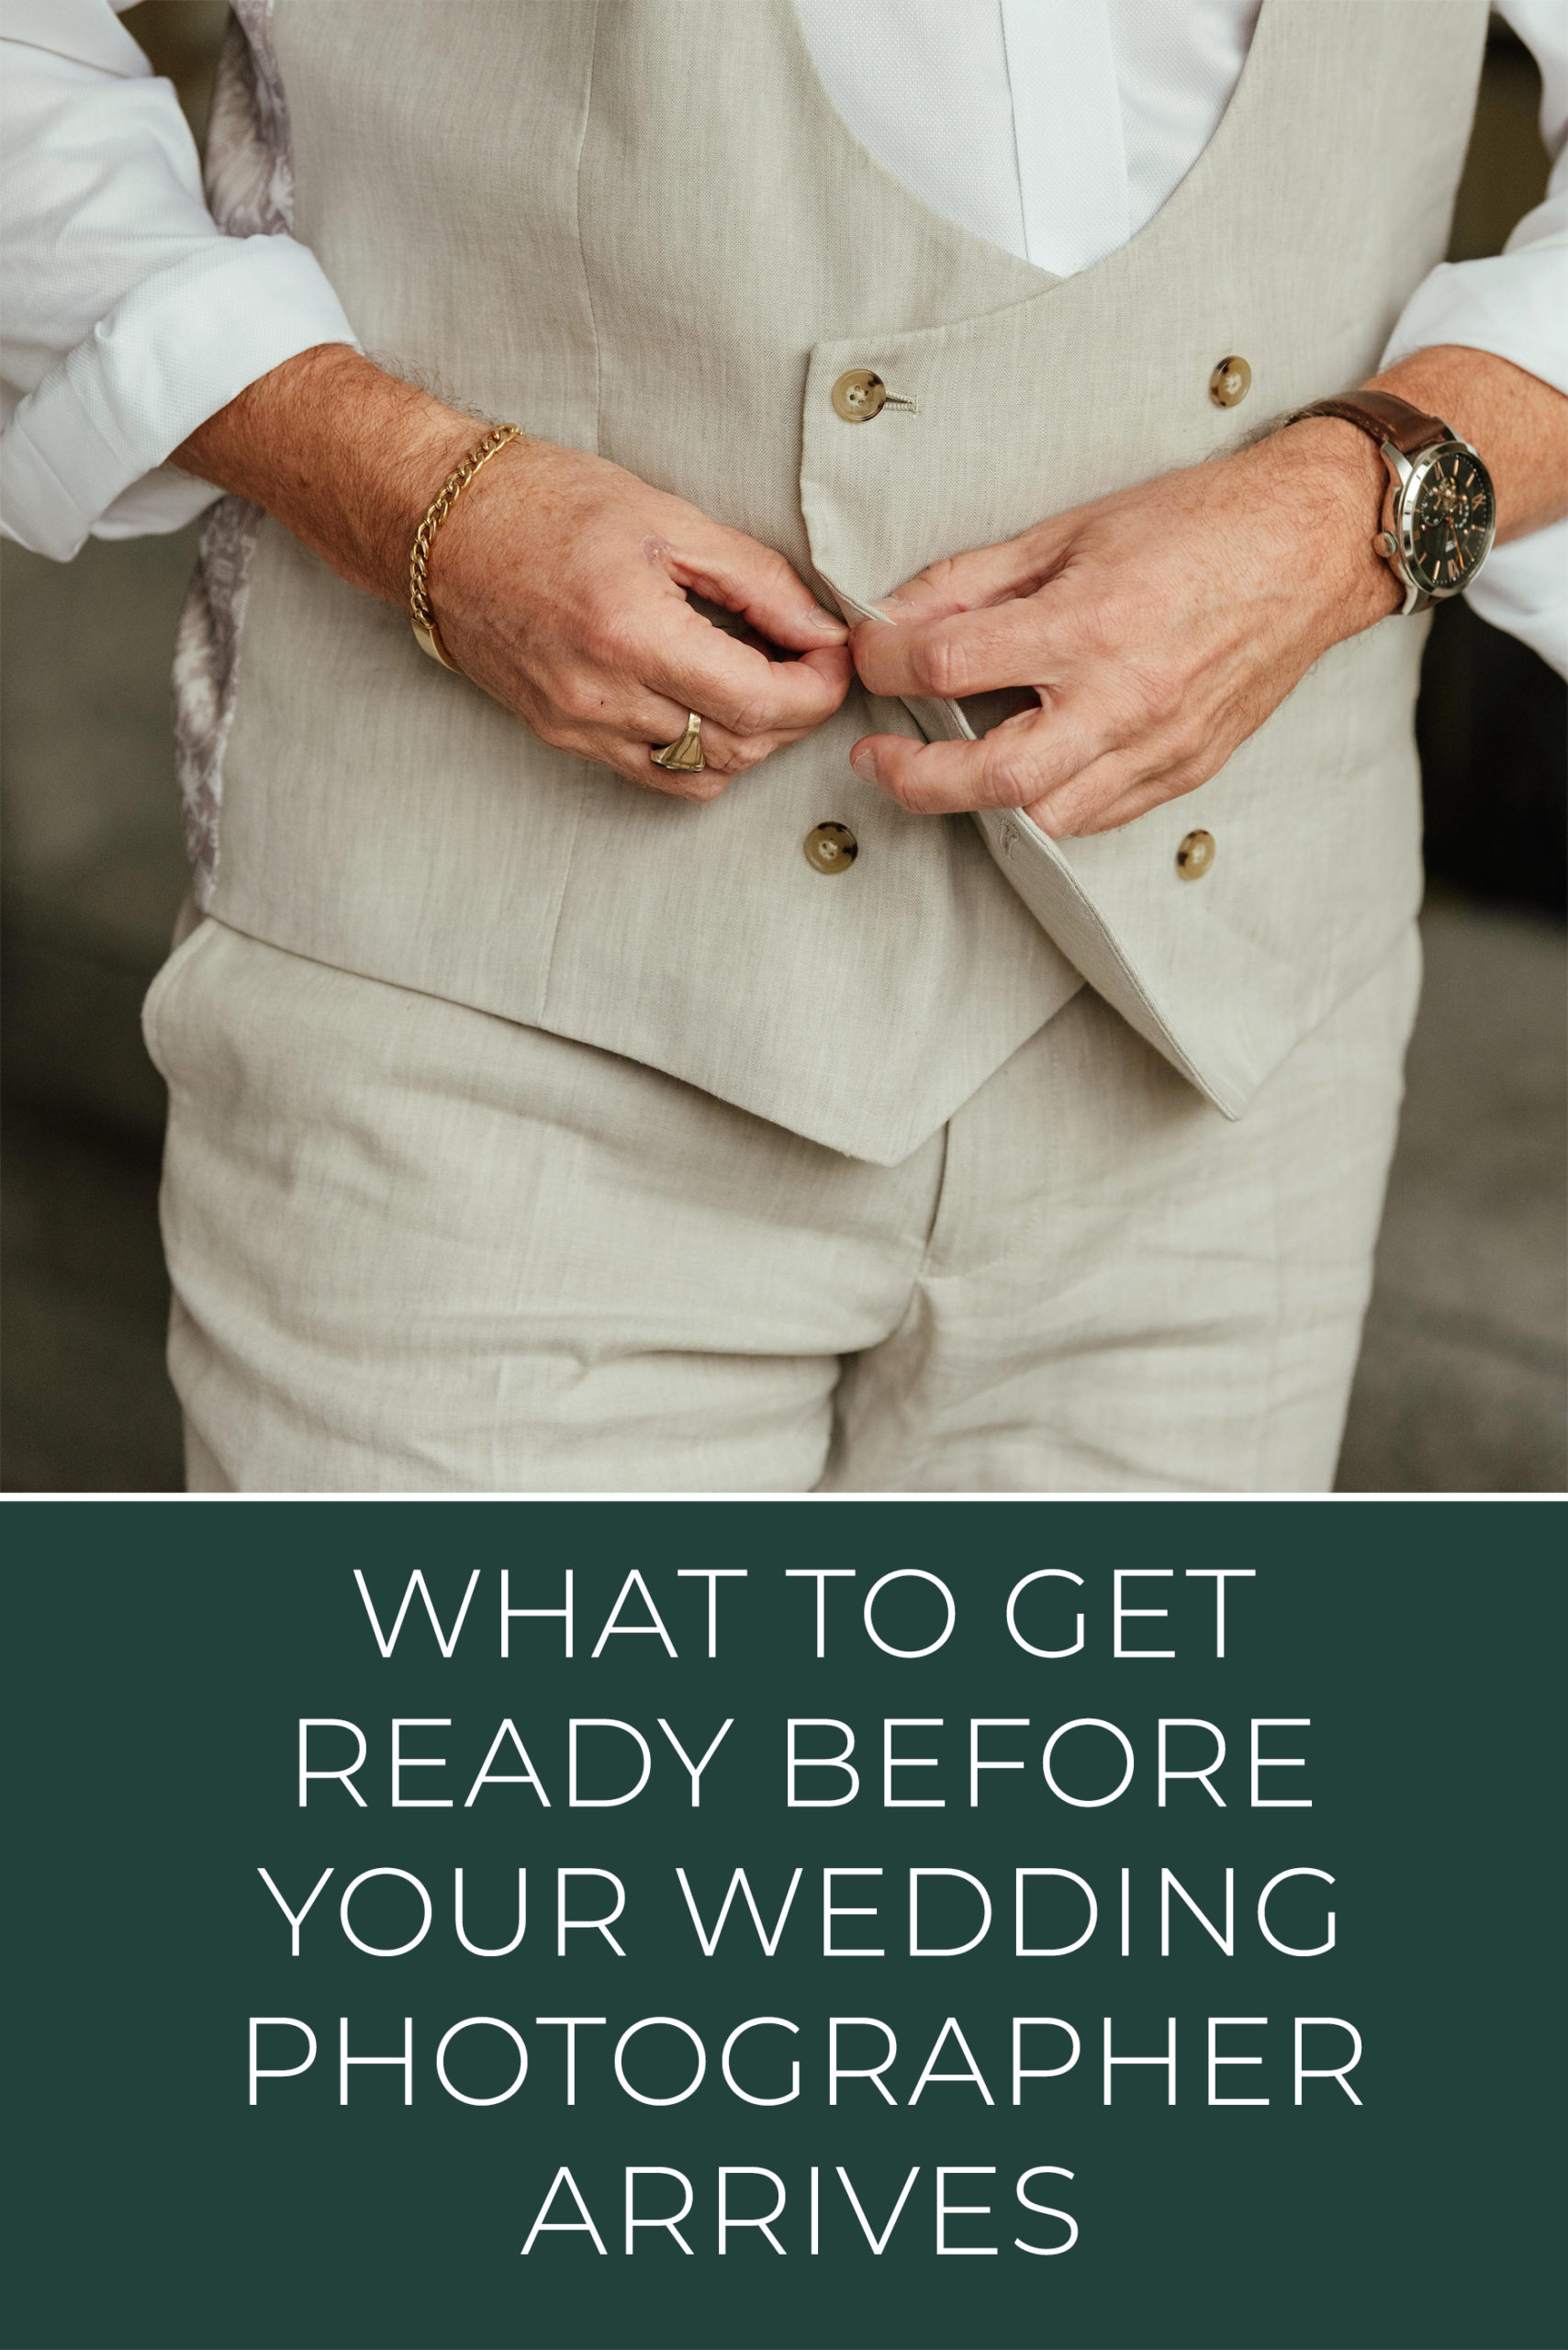 What to get ready before your wedding photographer arrives - Pinterest